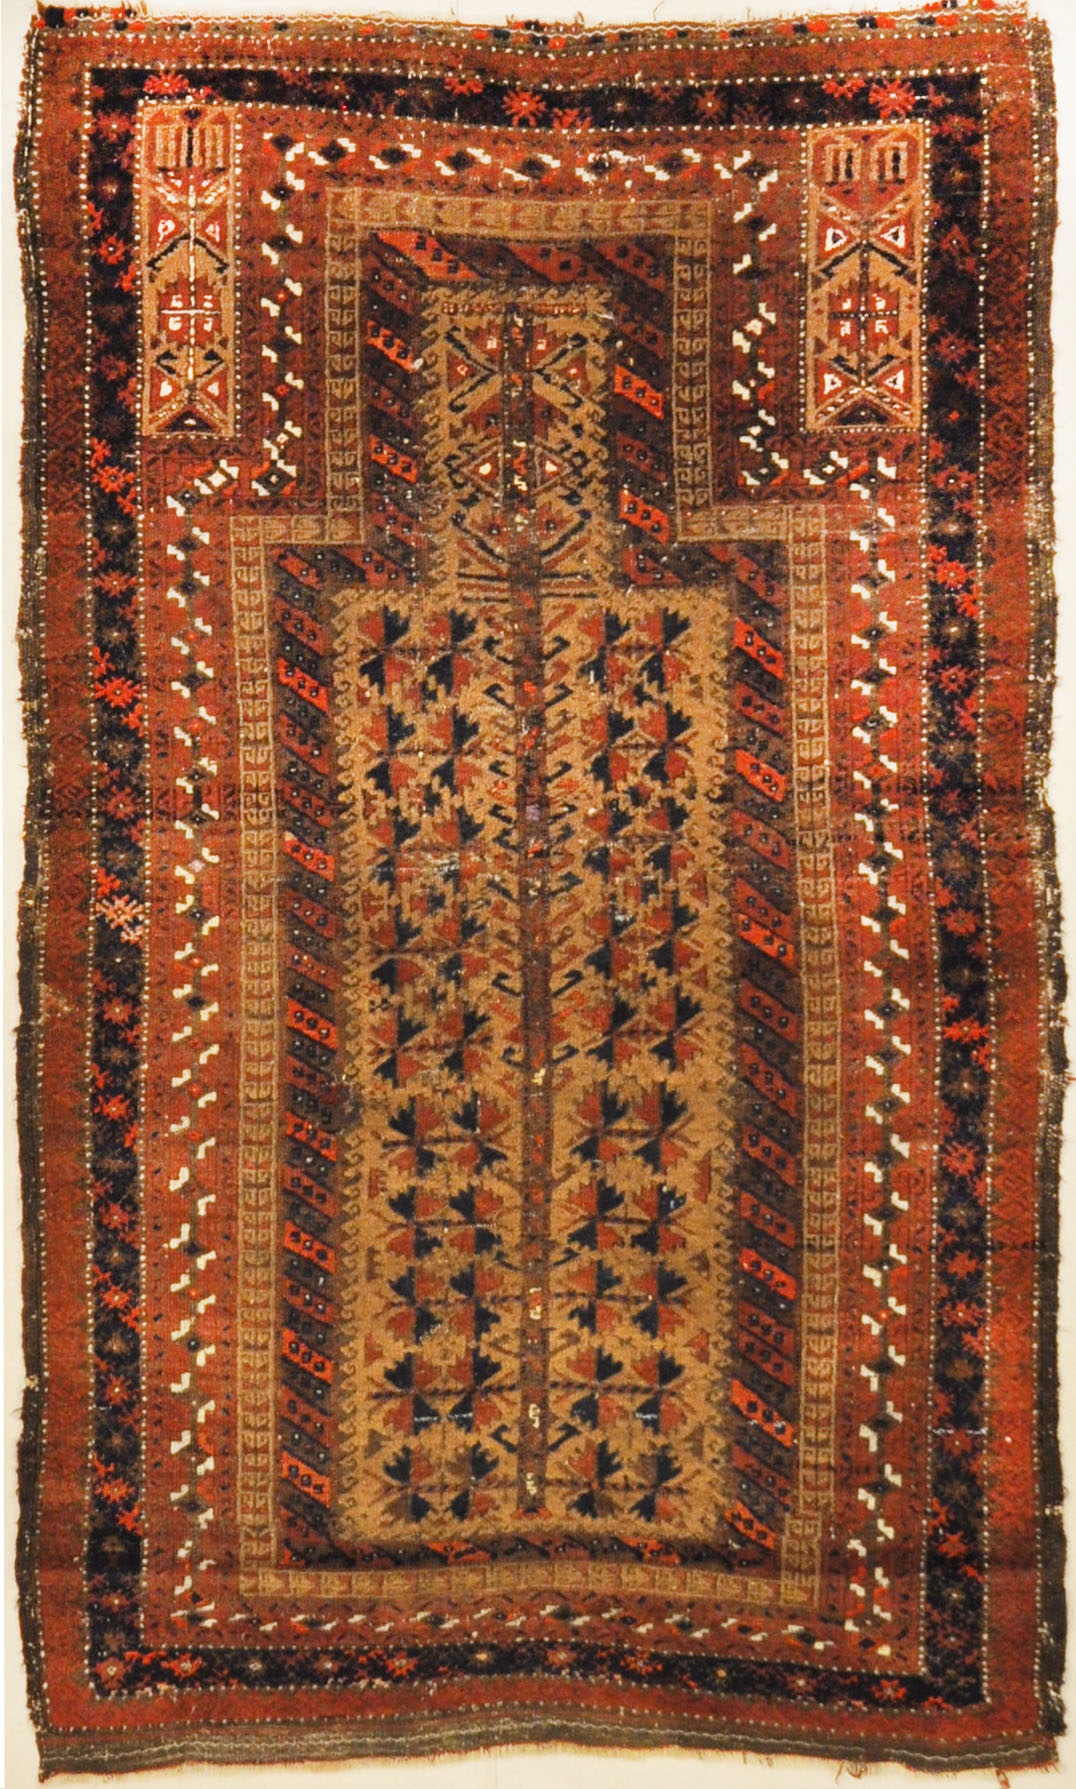 An antique, original Persian Baluch rug. A piece of genuine and authentic carpet art sold at Santa Barbara Design Center. Rugs and More.